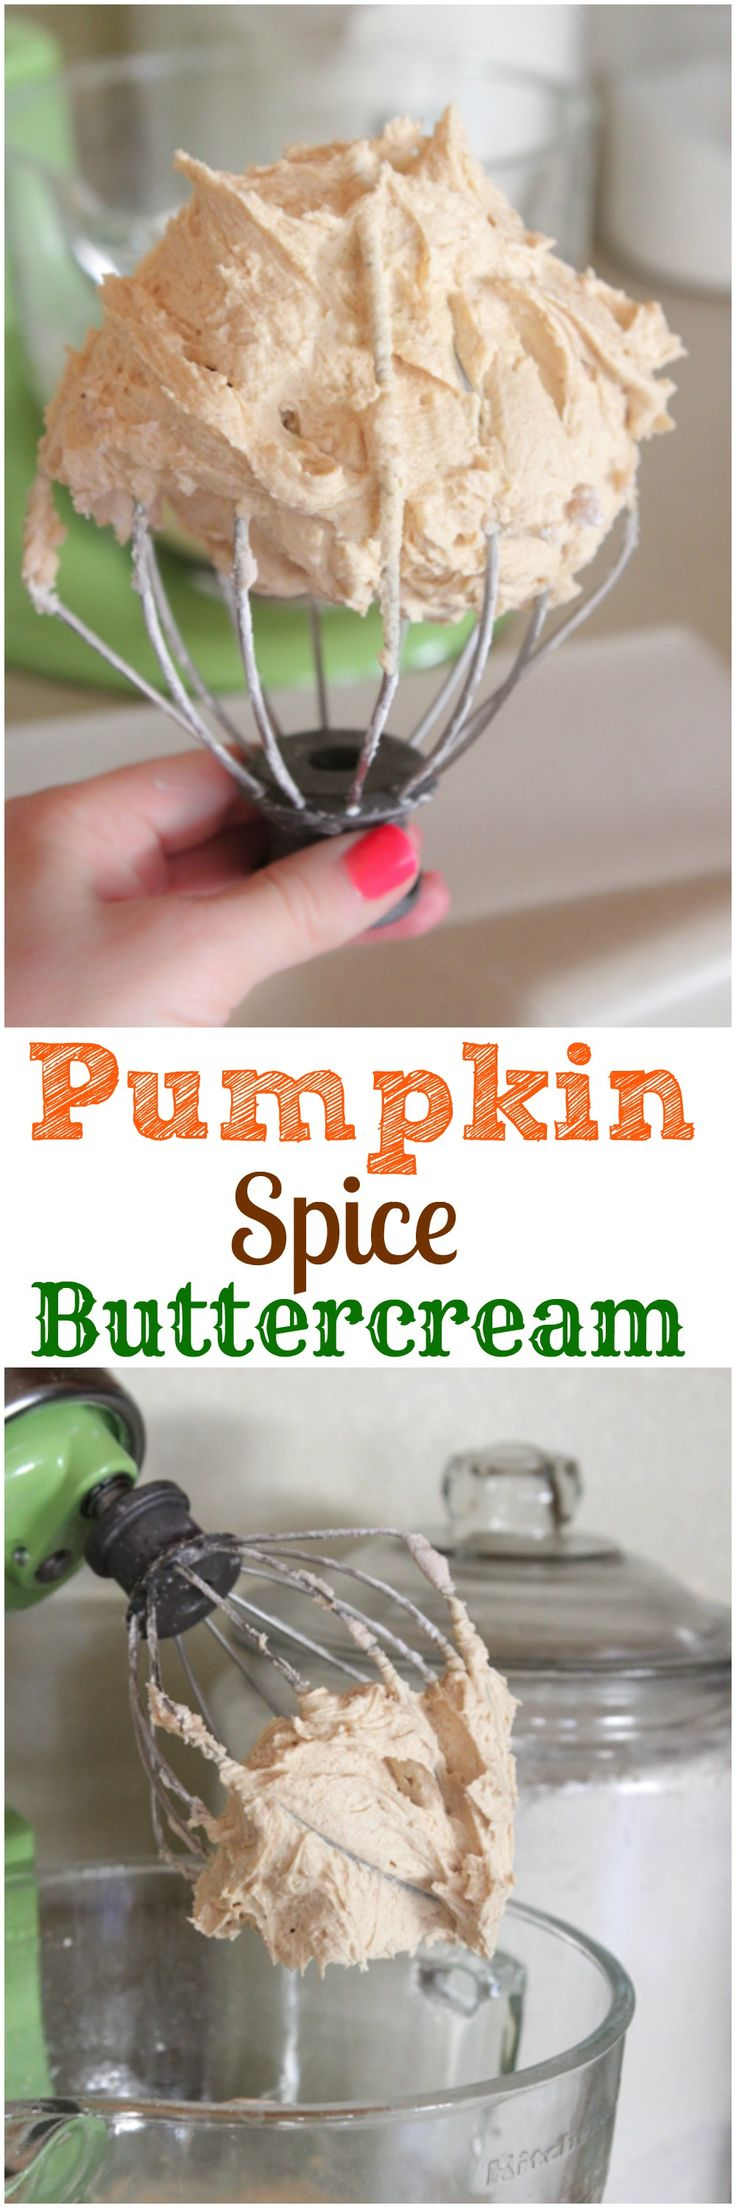 Pumpkin Spice Buttercream